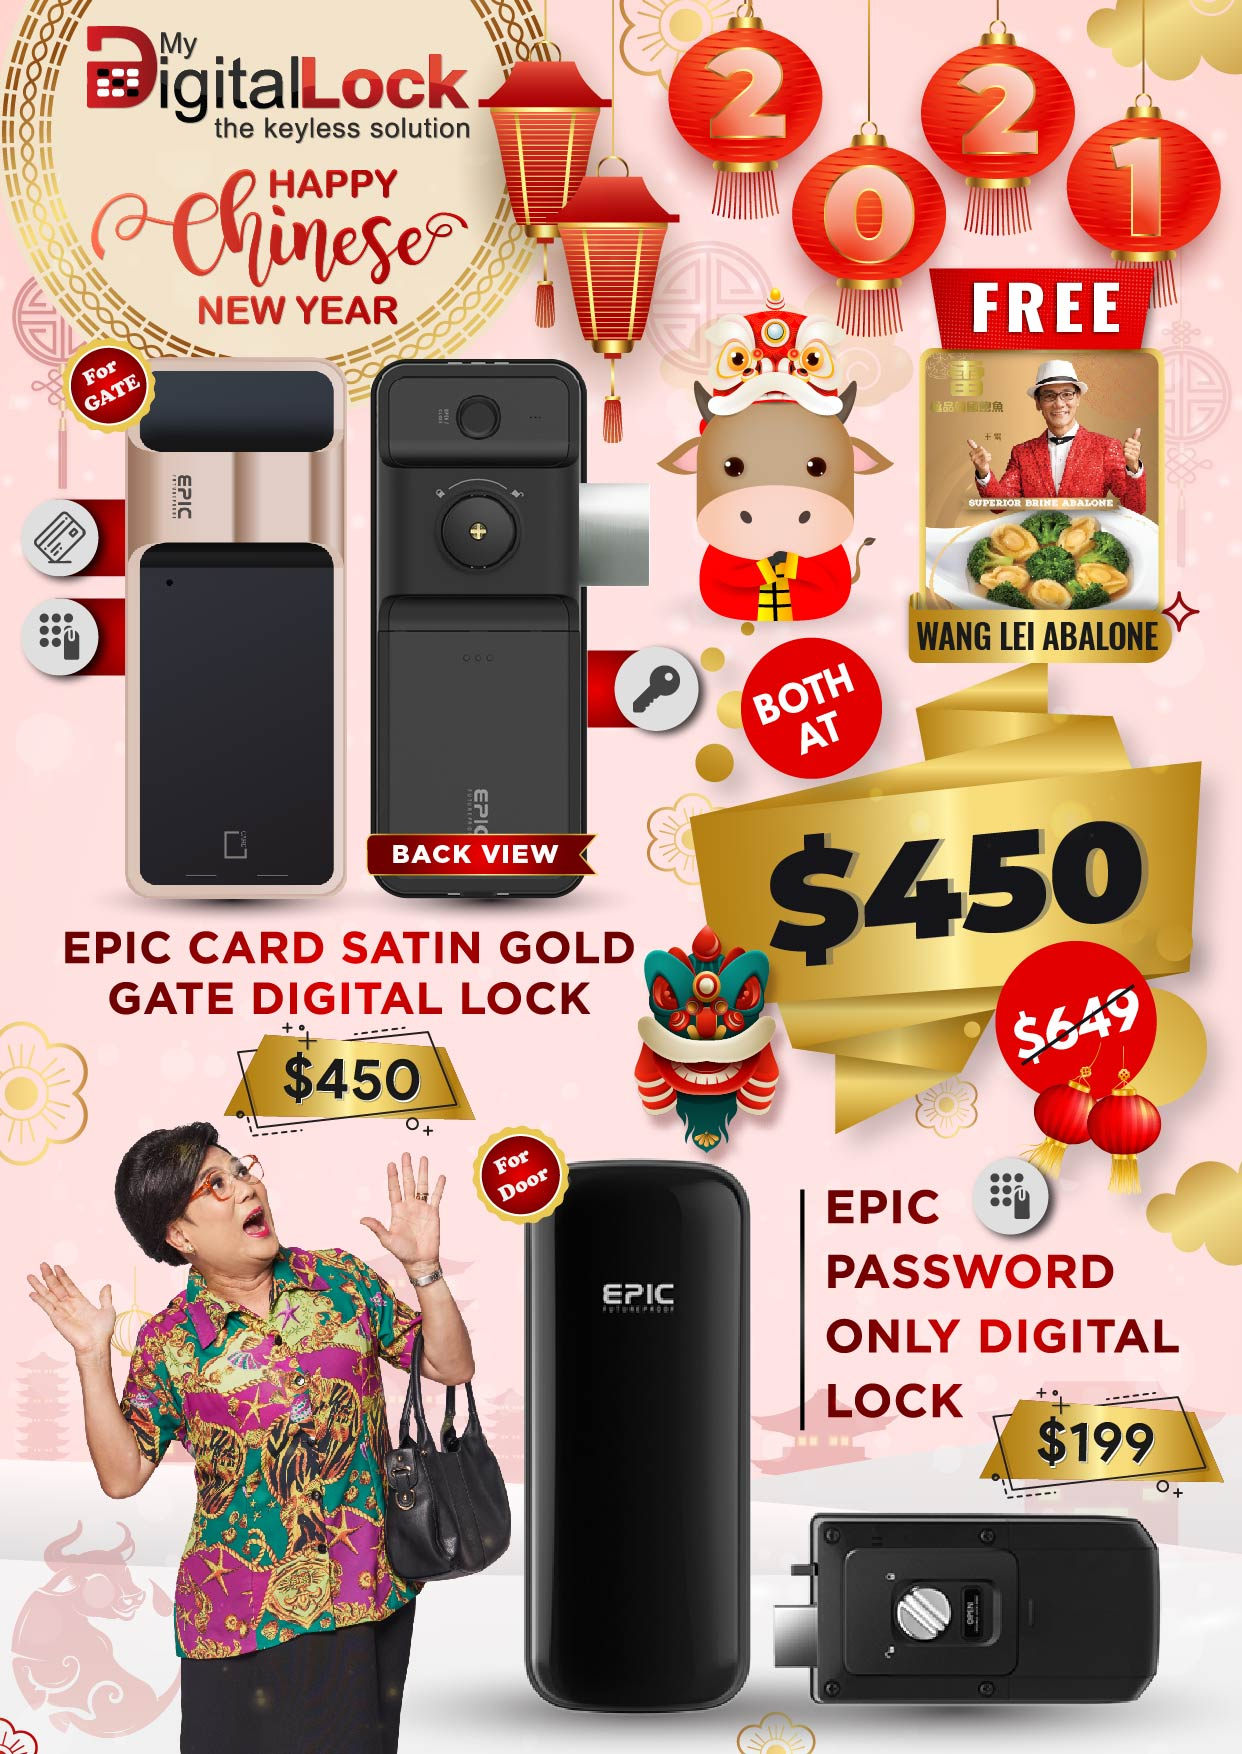 epic-passwordlock-chinese-newyear-promotions